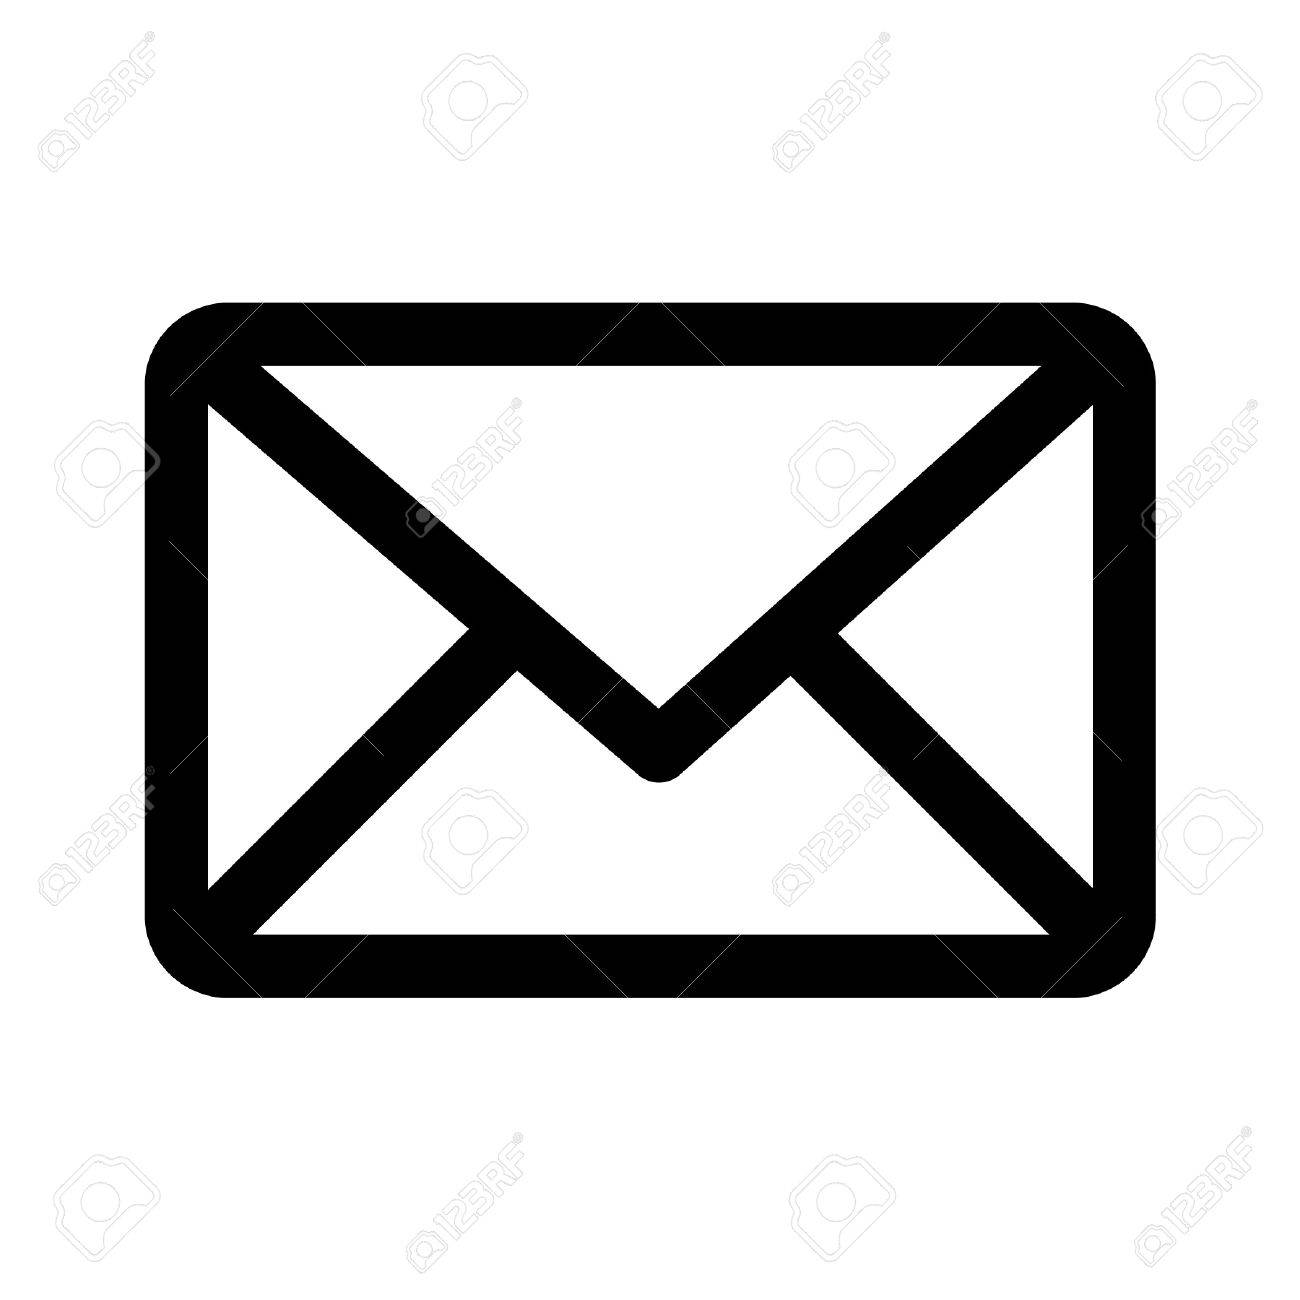 email message line art icon for apps and websites royalty free rh 123rf com email icons vector free download email vector icon